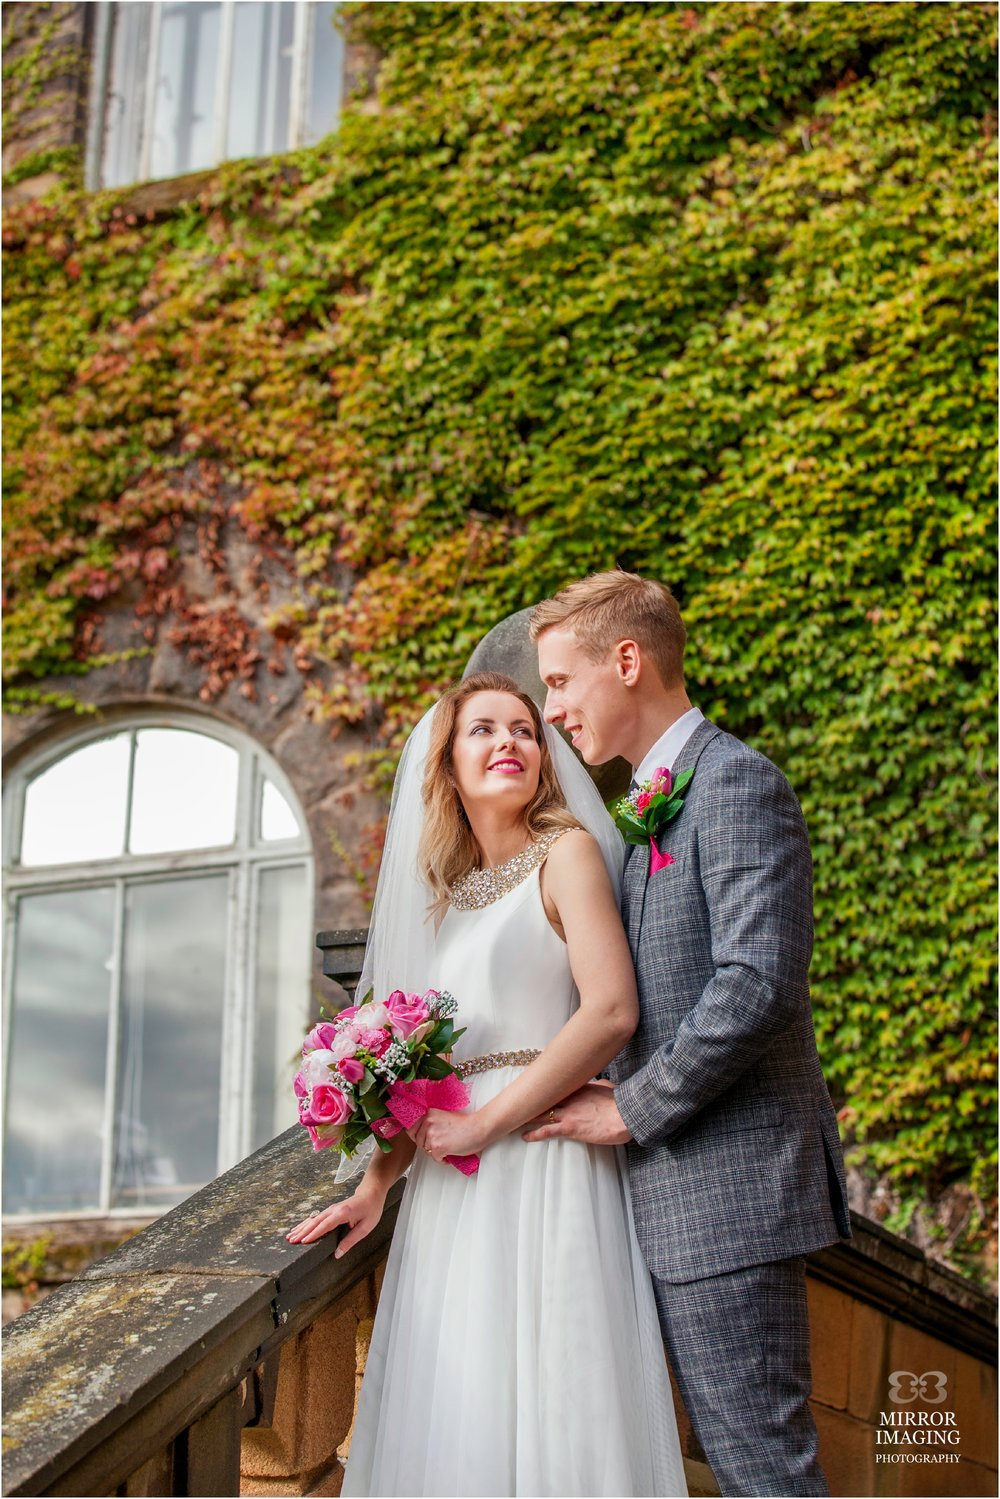 wedding_photographers_nottingham_18a.jpg